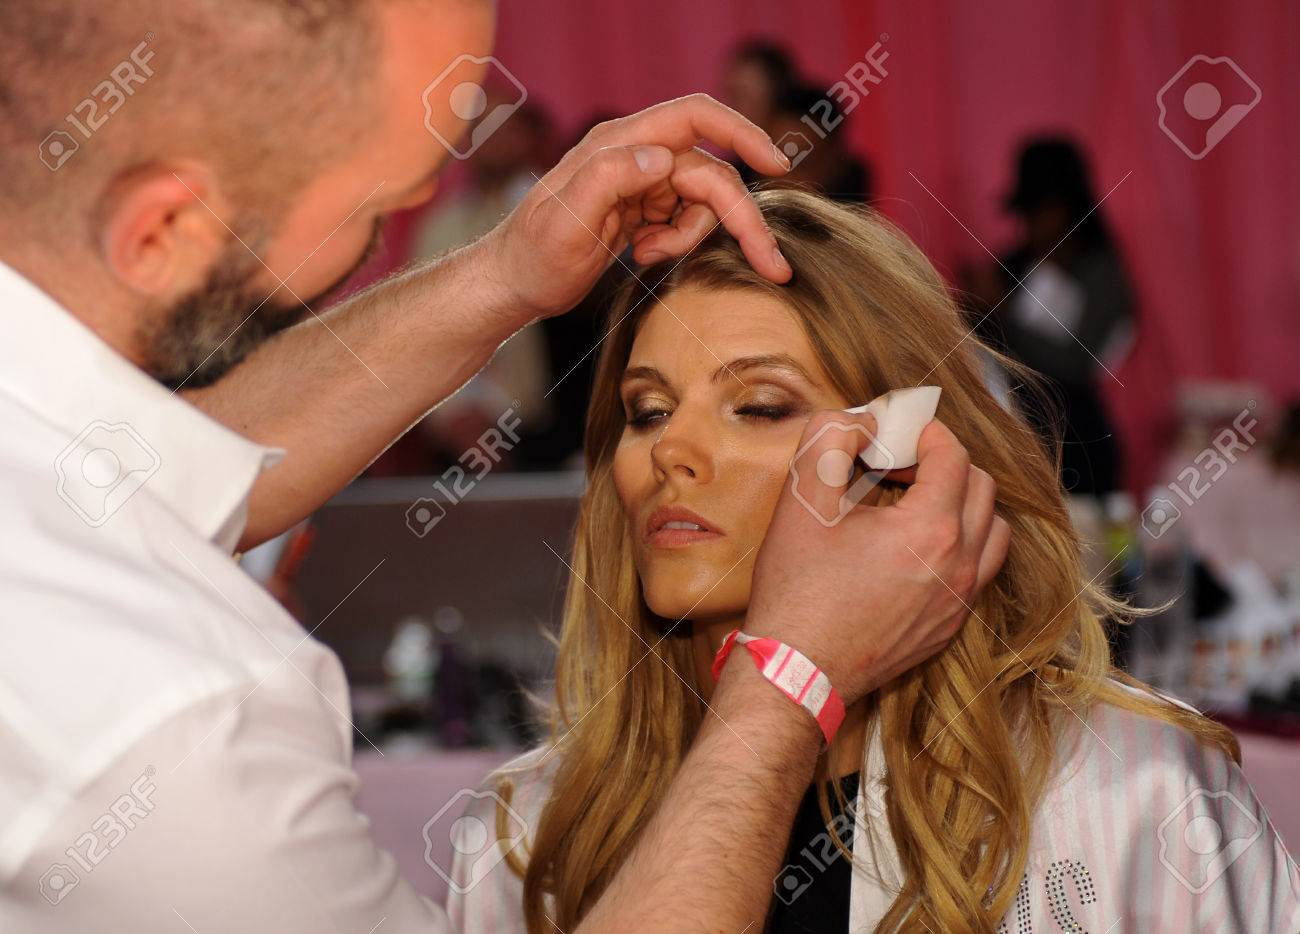 NEW YORK, NY - NOVEMBER 13: Lead Makeup Artist Dick Page applying make-up to model Maryna Linchuk at the 2013 Victoria's Secret Fashion Show hair and ...